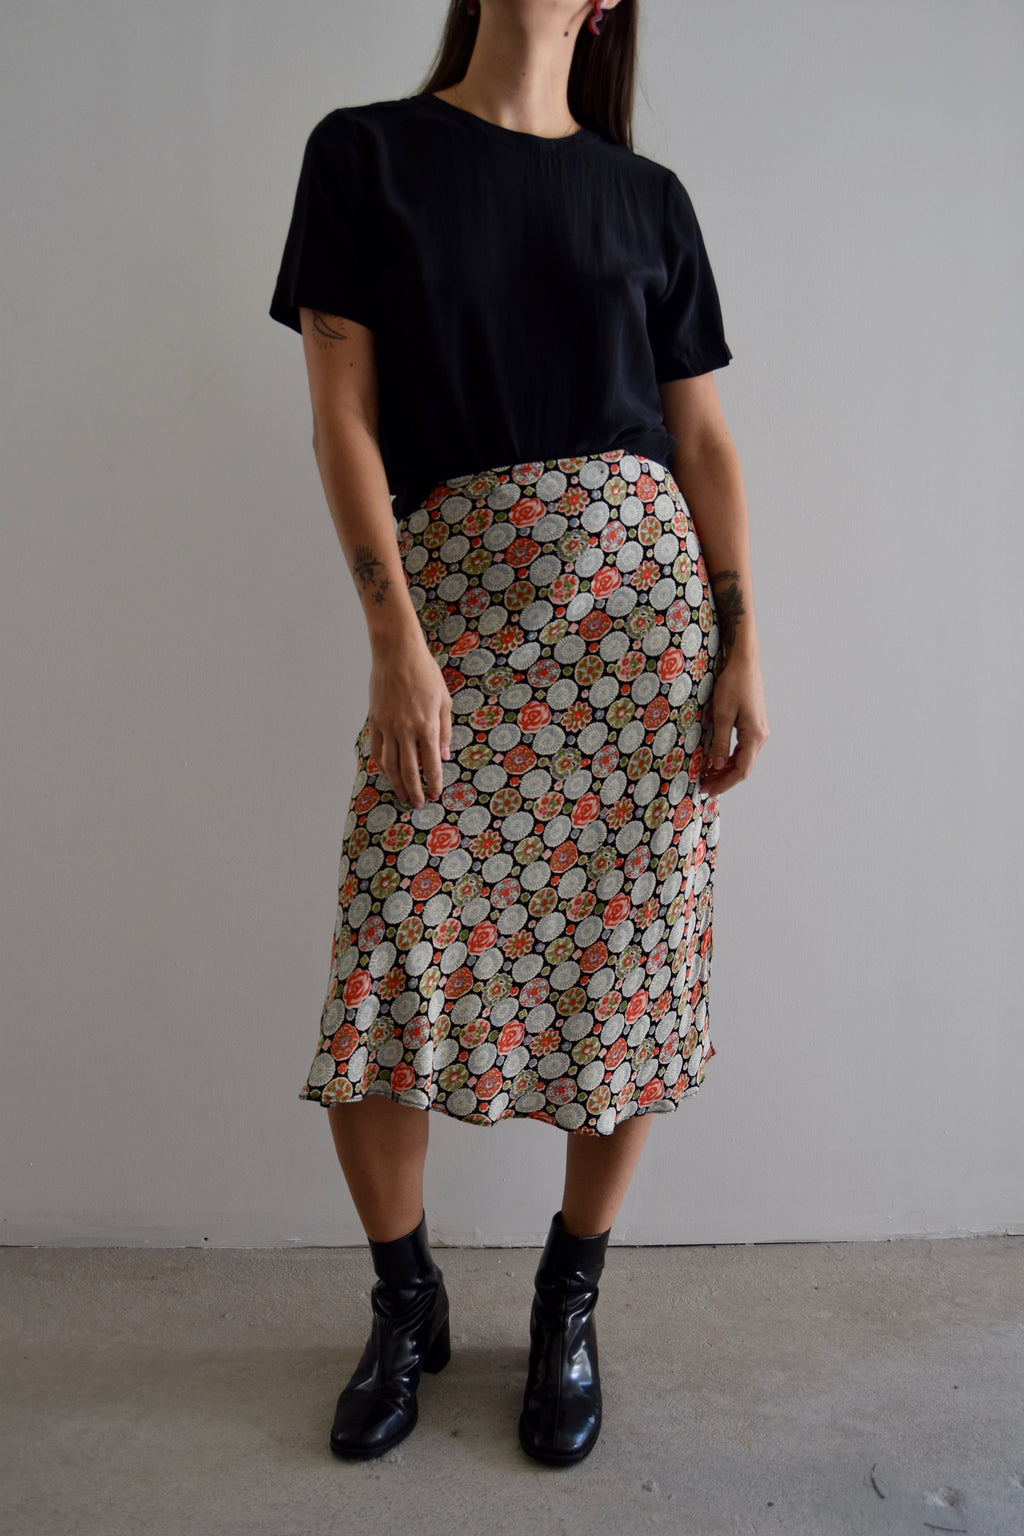 Vintage Angie Floral Sand Dollar Printed Midi Skirt FREE SHIPPING TO THE U.S.